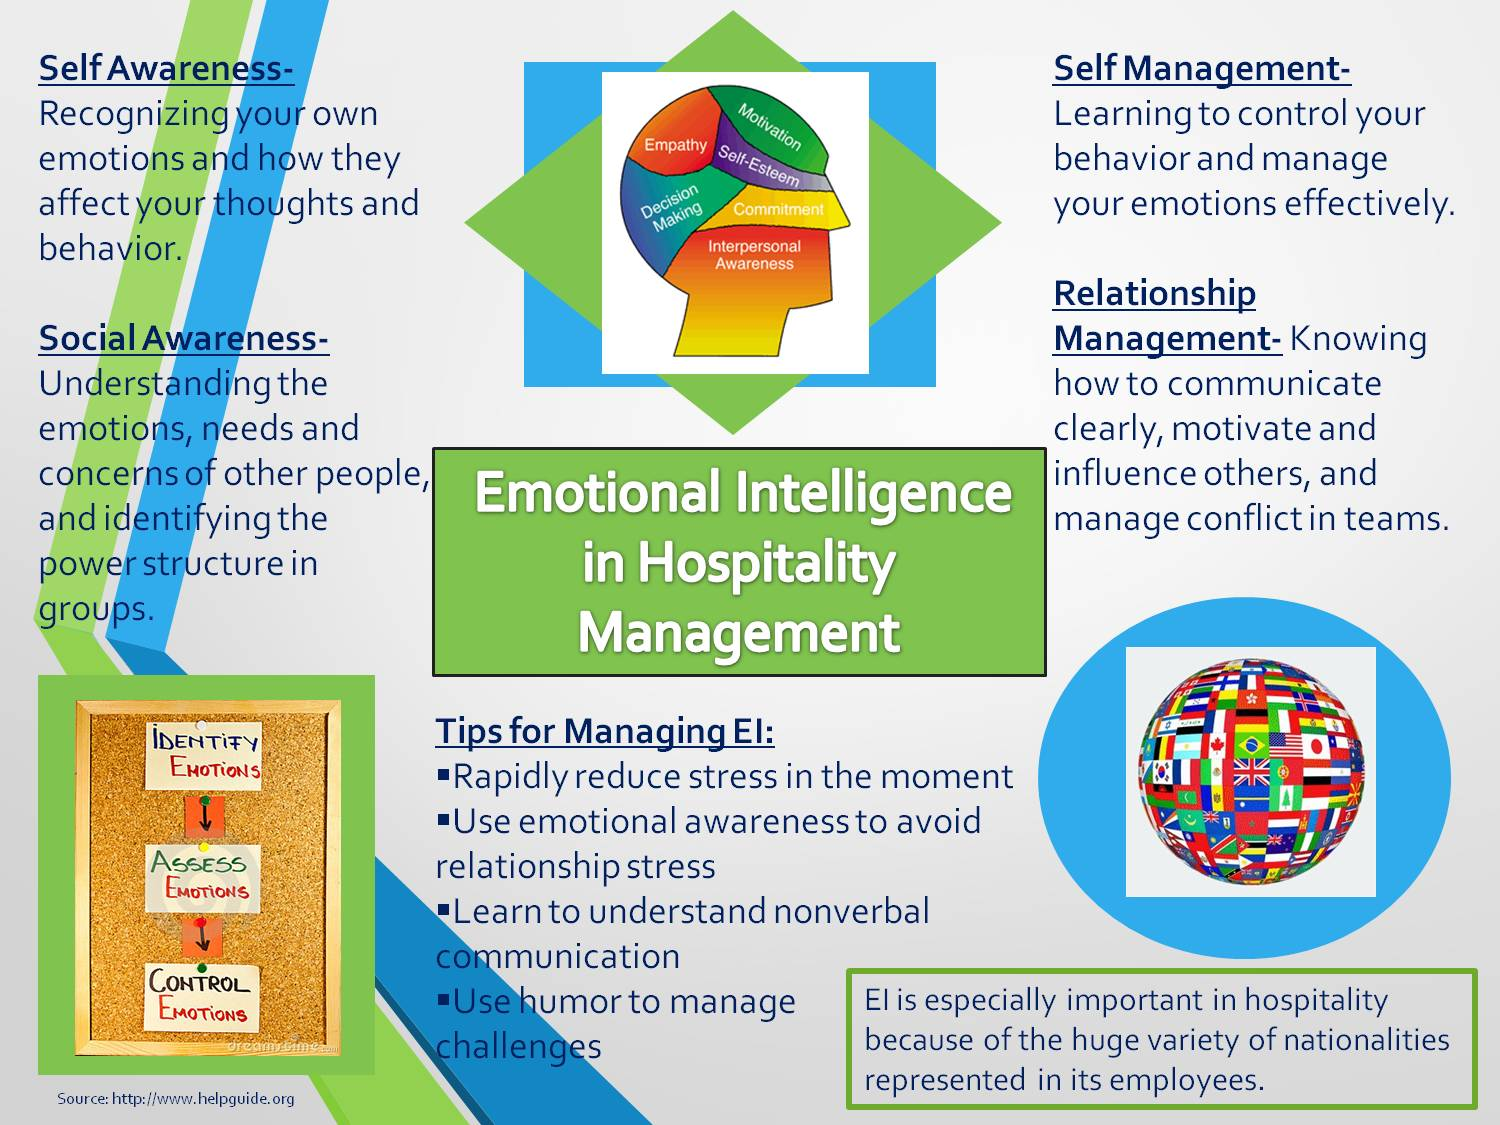 Emotional Intelligence In Hospitality Management by mfc36